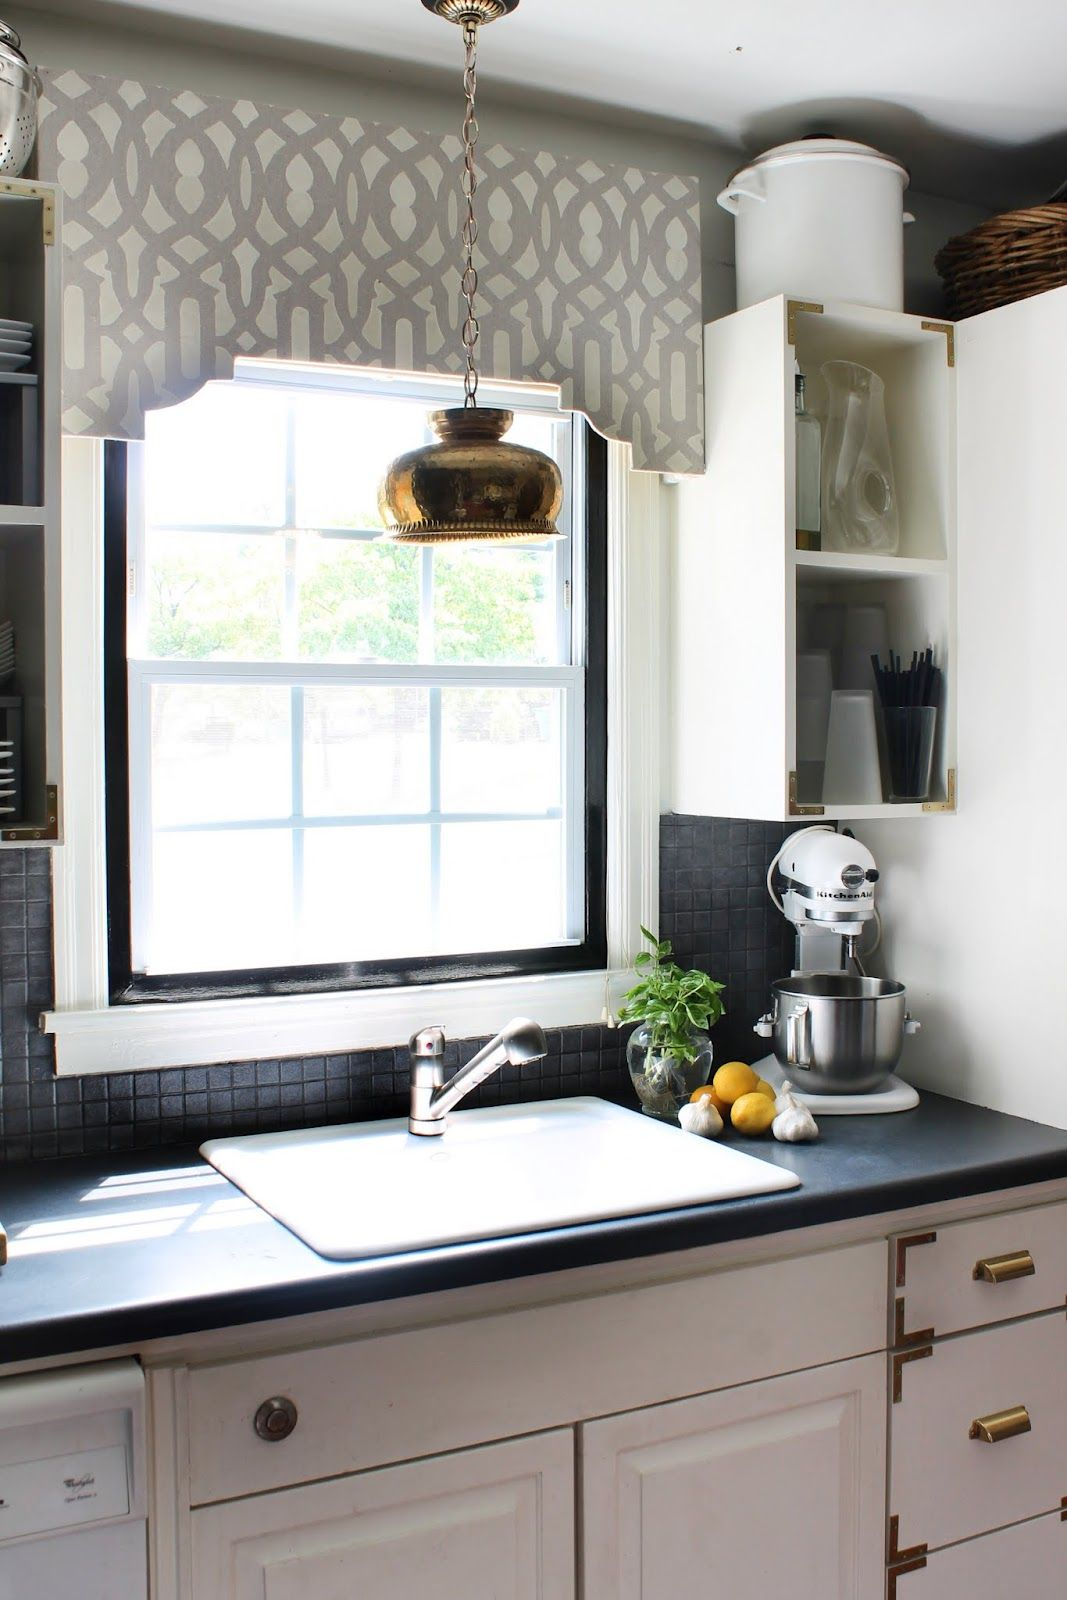 Over the sink kitchen window treatments  home and food reads  window interiors and cornice boards